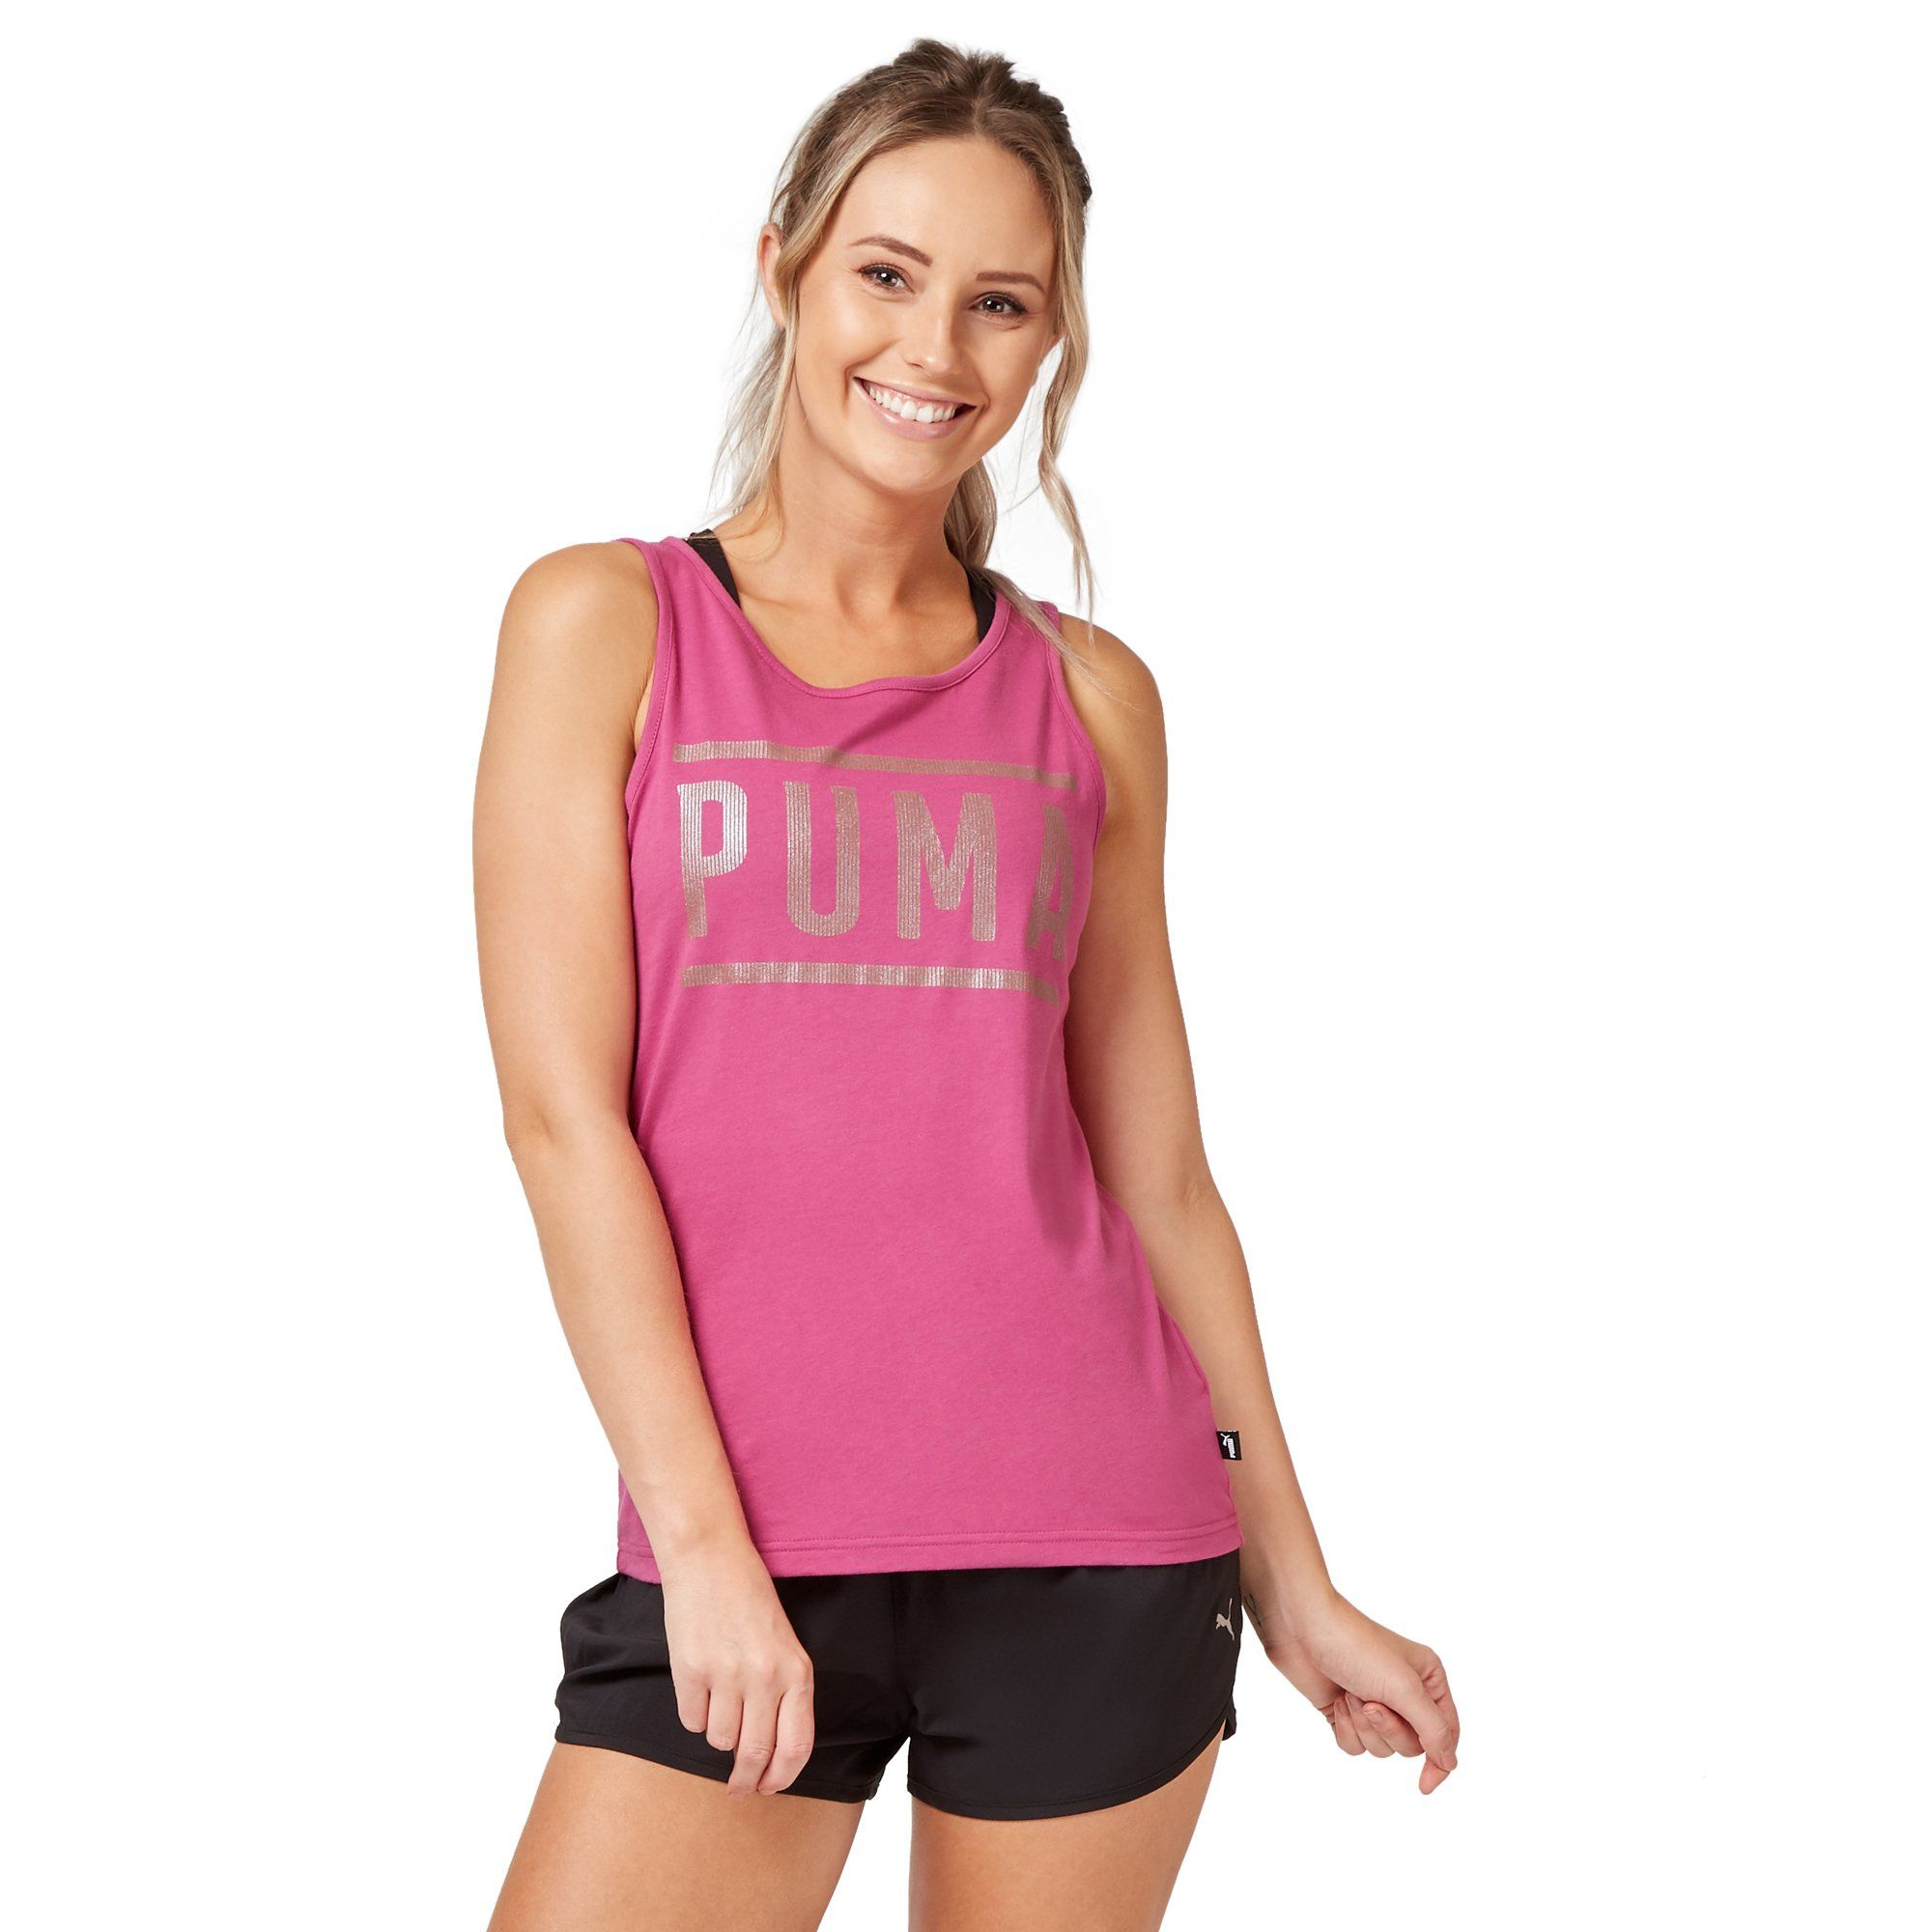 Puma Women's Athletic Tank Top - Magenta Apparel Puma